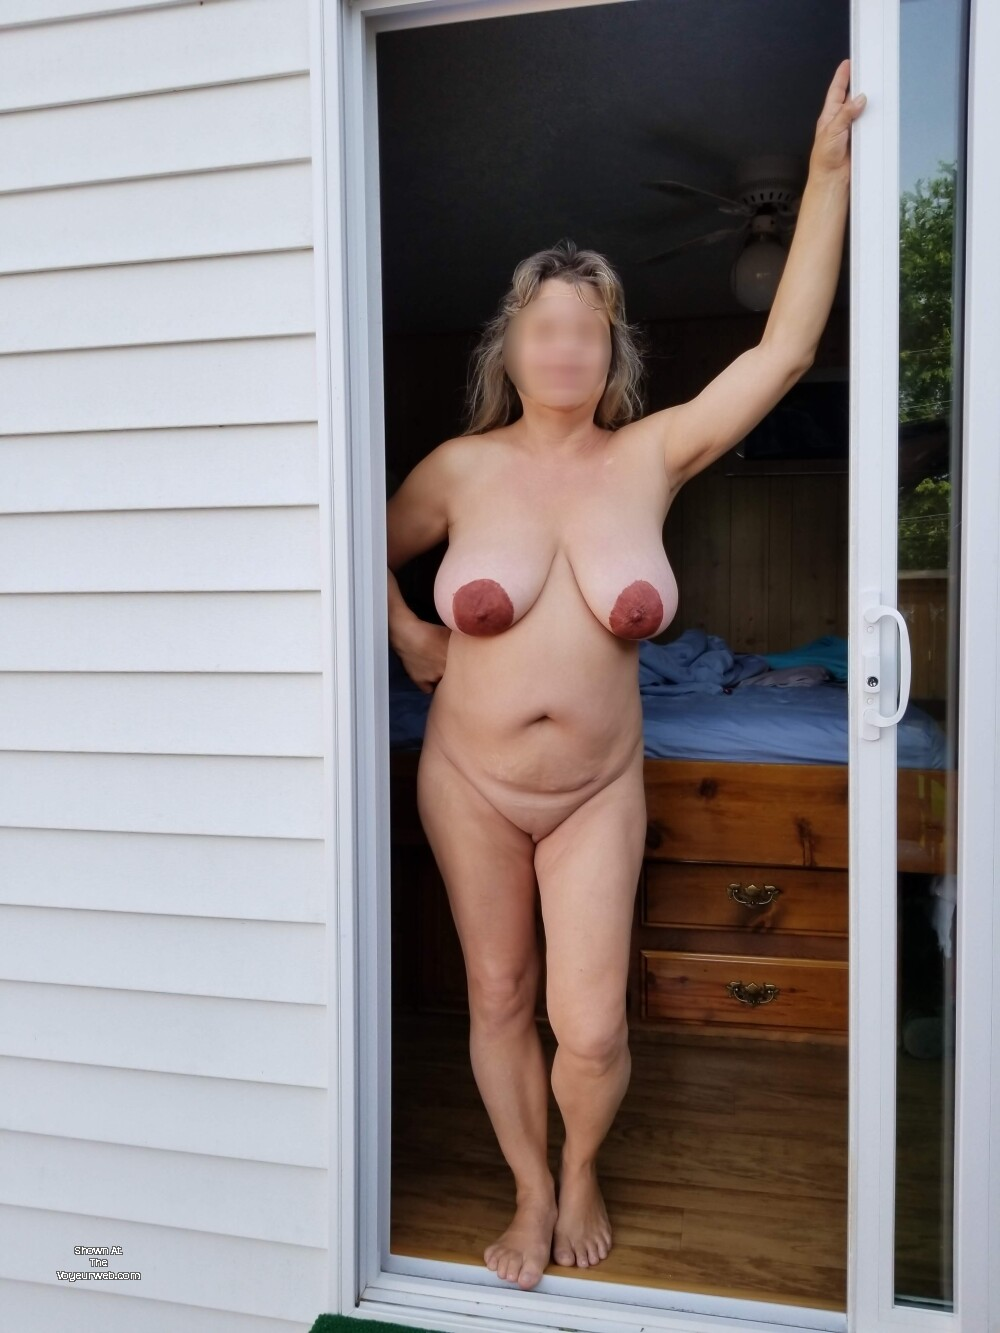 Mature wife big boobs Very Large Tits Of My Wife Mature Wife June 2019 Voyeur Web